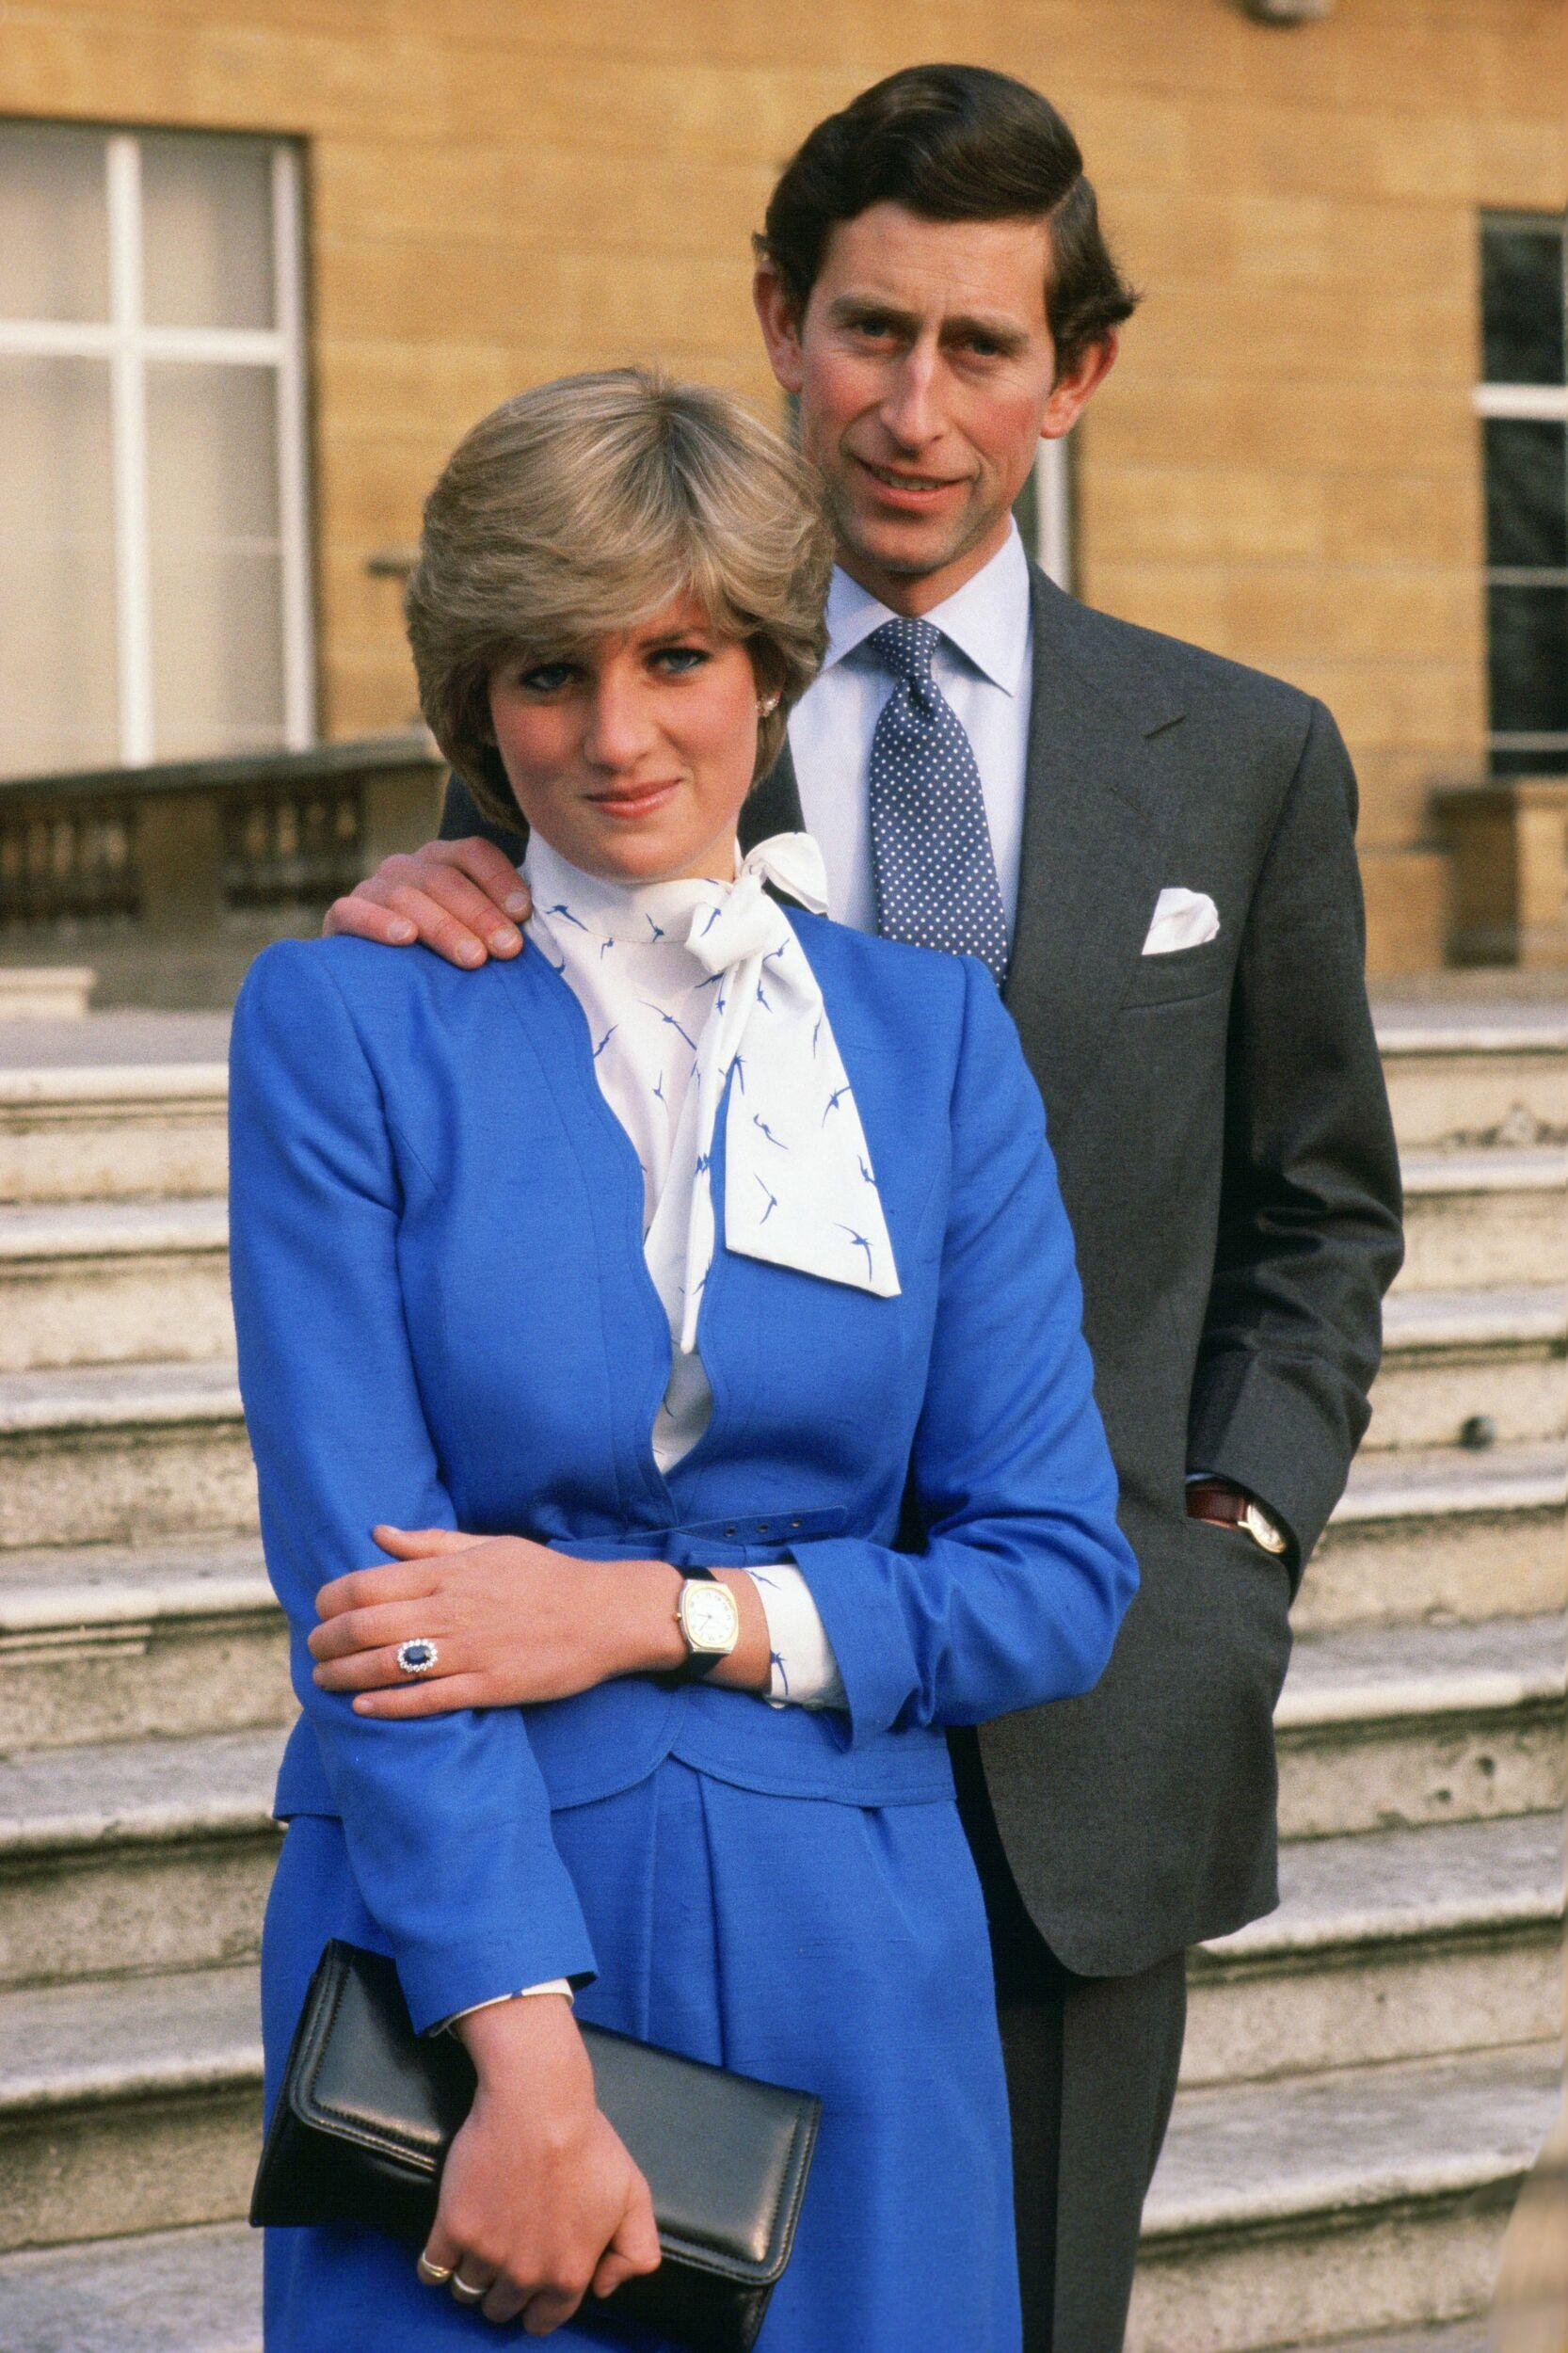 Diana and Charles pose for a formal picture.